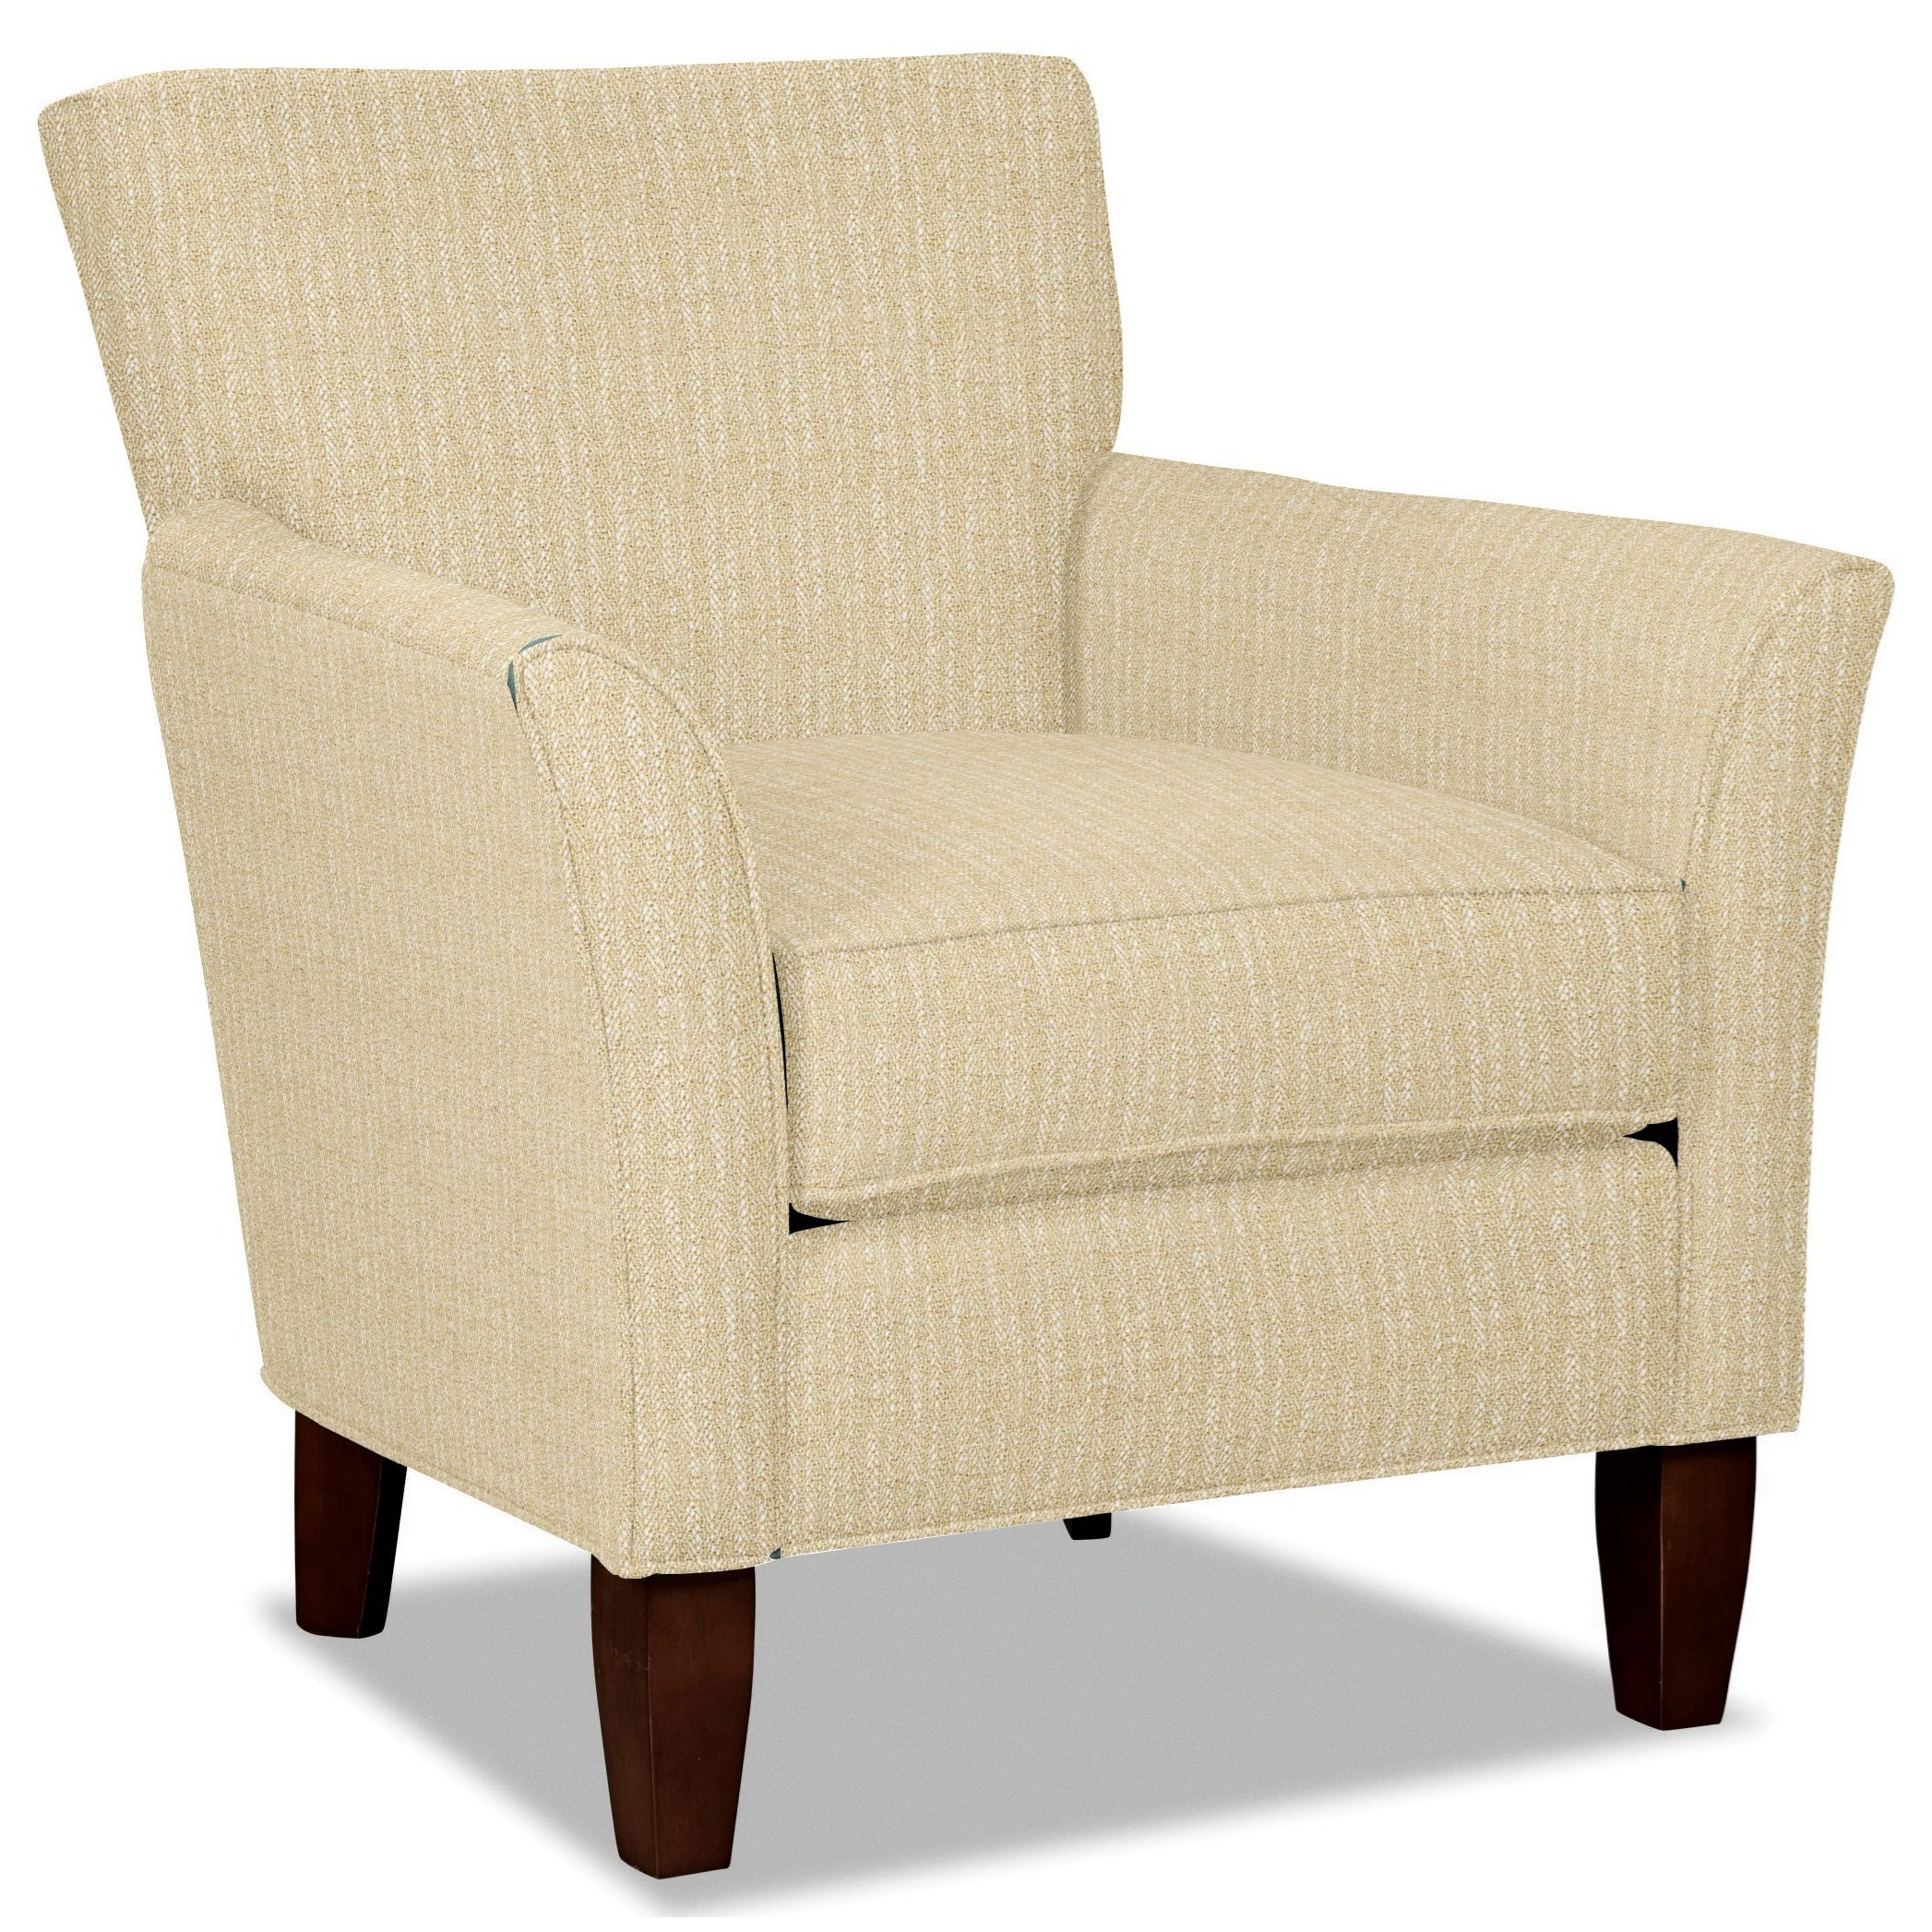 Craftmaster 060110 Accent Chair - Item Number: 060110-GLENBRIAR-03